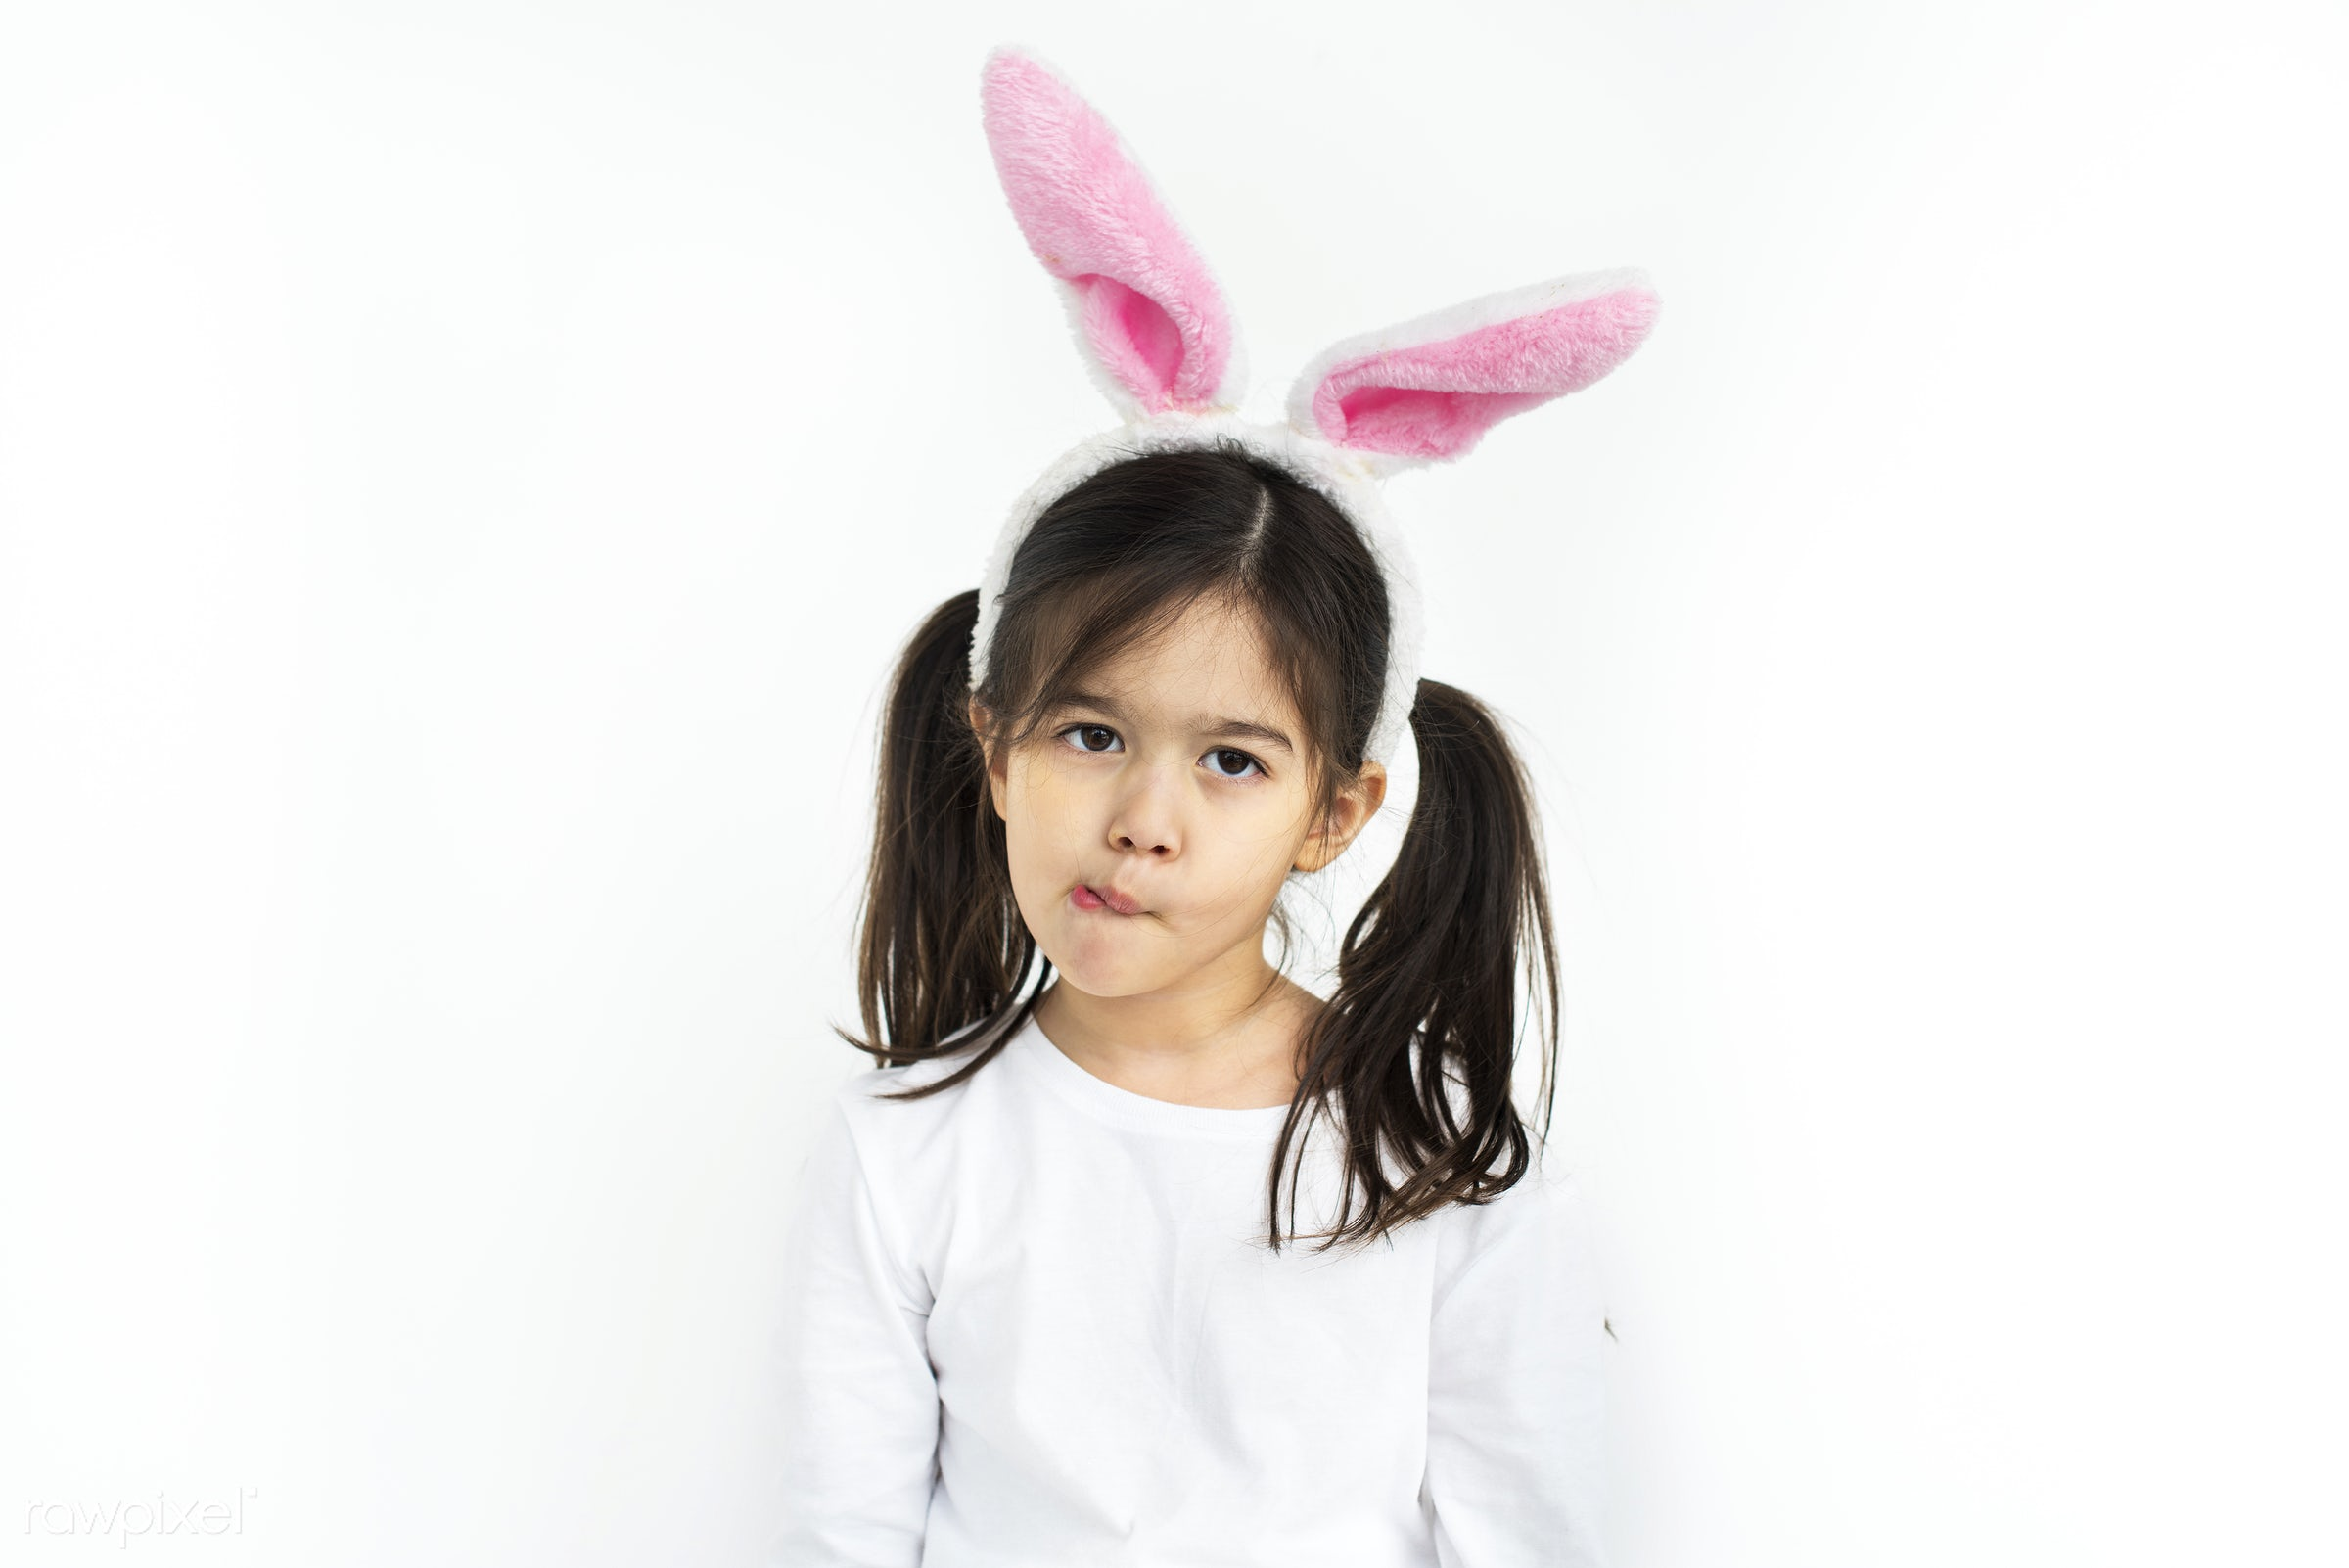 expression, rabbit, studio, person, cute, people, pretty, child, girl, casual, childhood, isolated, youth, kids, young,...